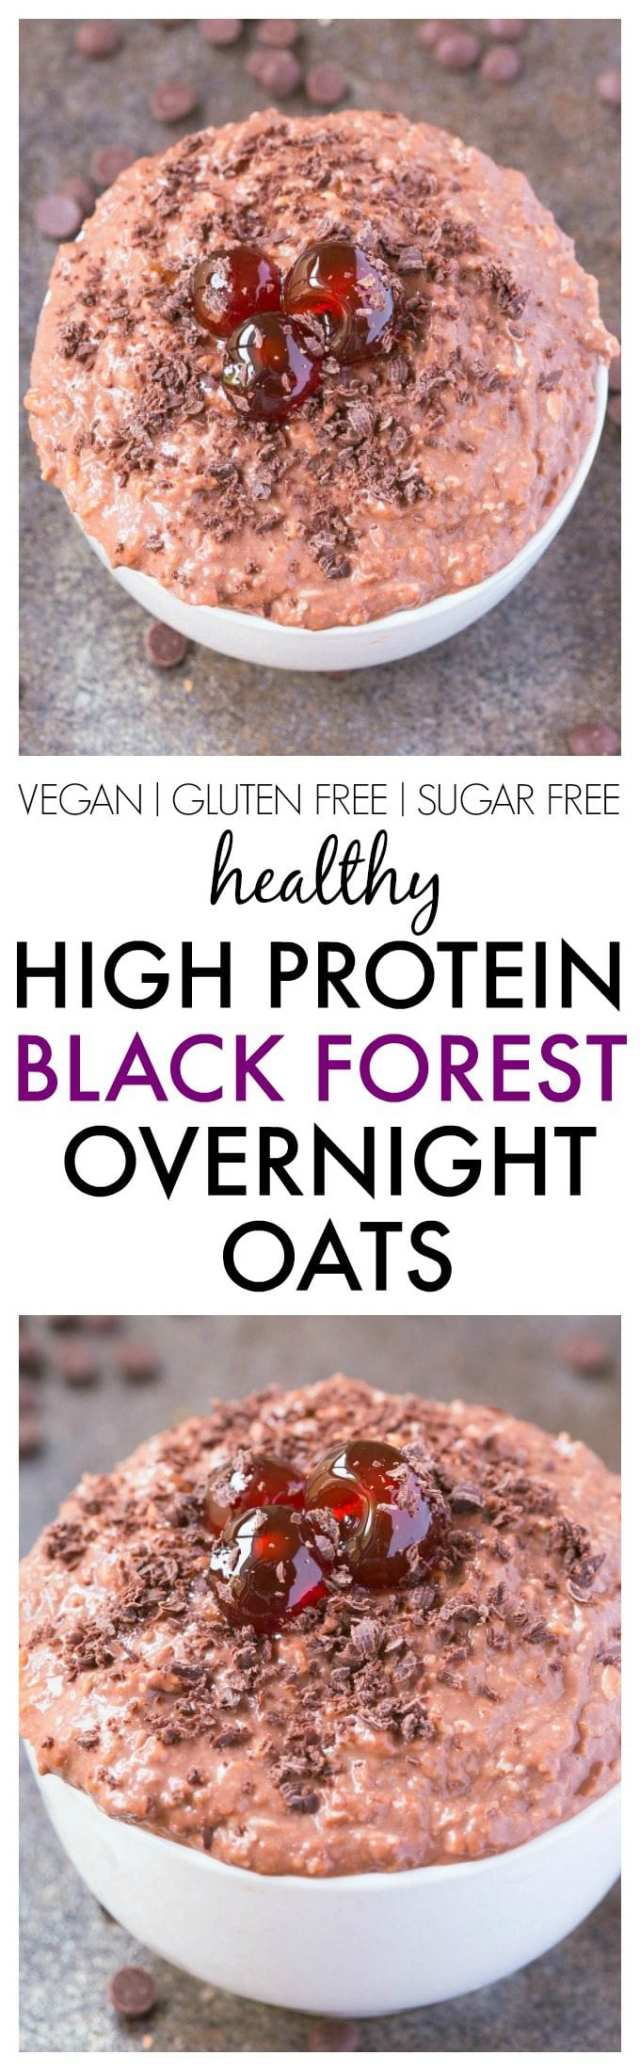 Healthy Black Forest Overnight Oats which taste JUST like a black forest cake, minus all the nasties! NO sugar and packed with protein- Dessert for breakfast! {vegan, gluten free, sugar free recipe}- thebigmansworld.com